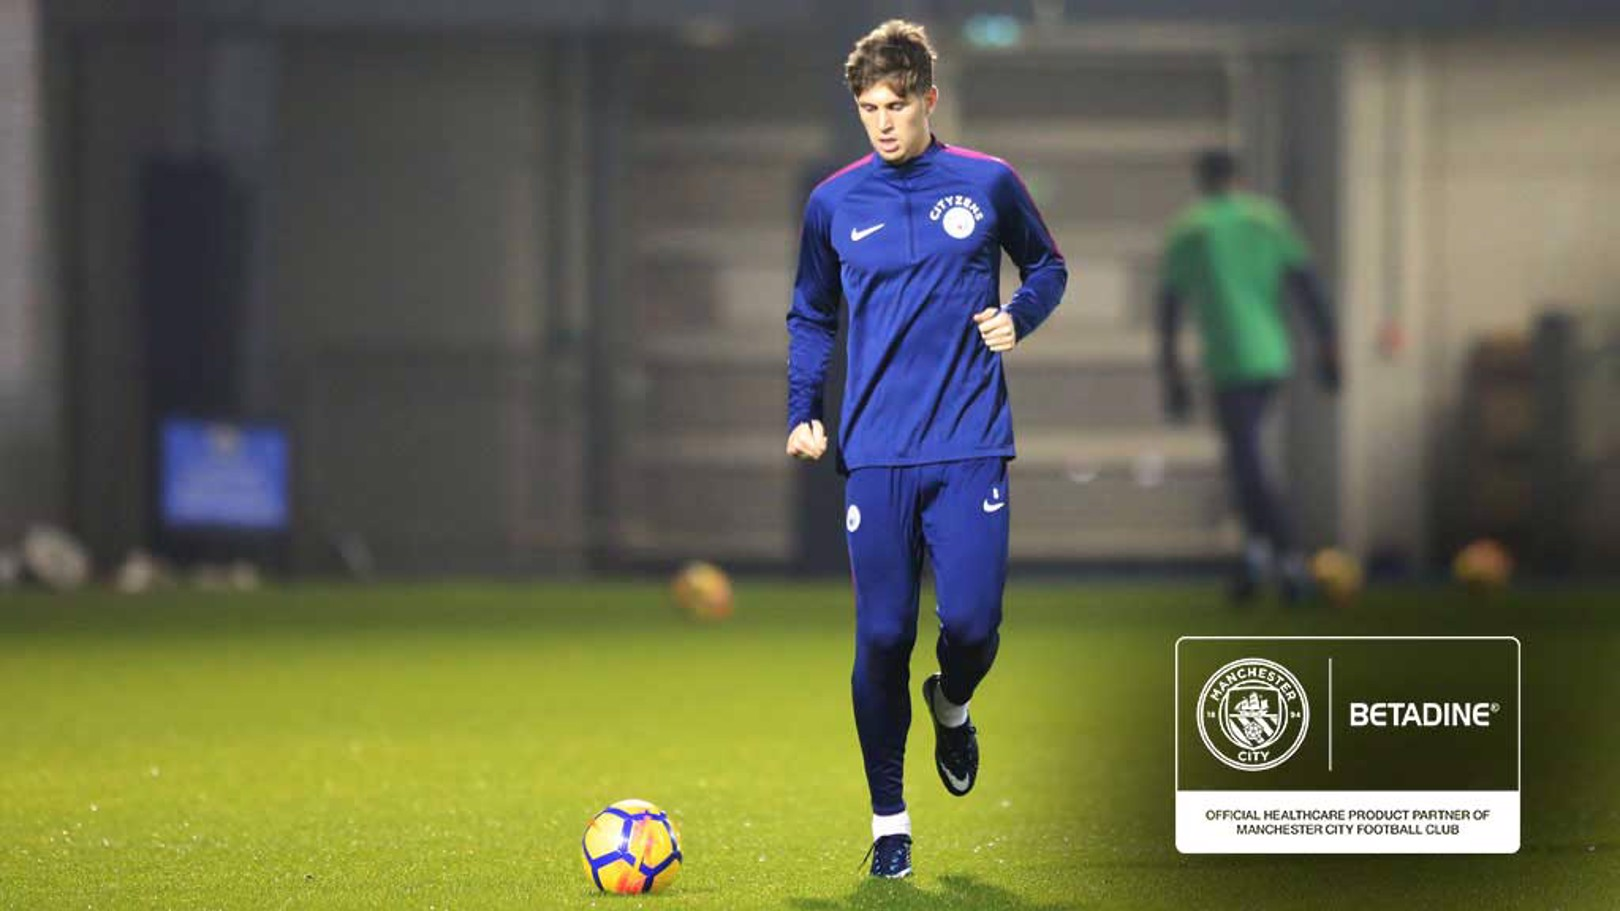 ROAD TO RECOVERY: John Stones